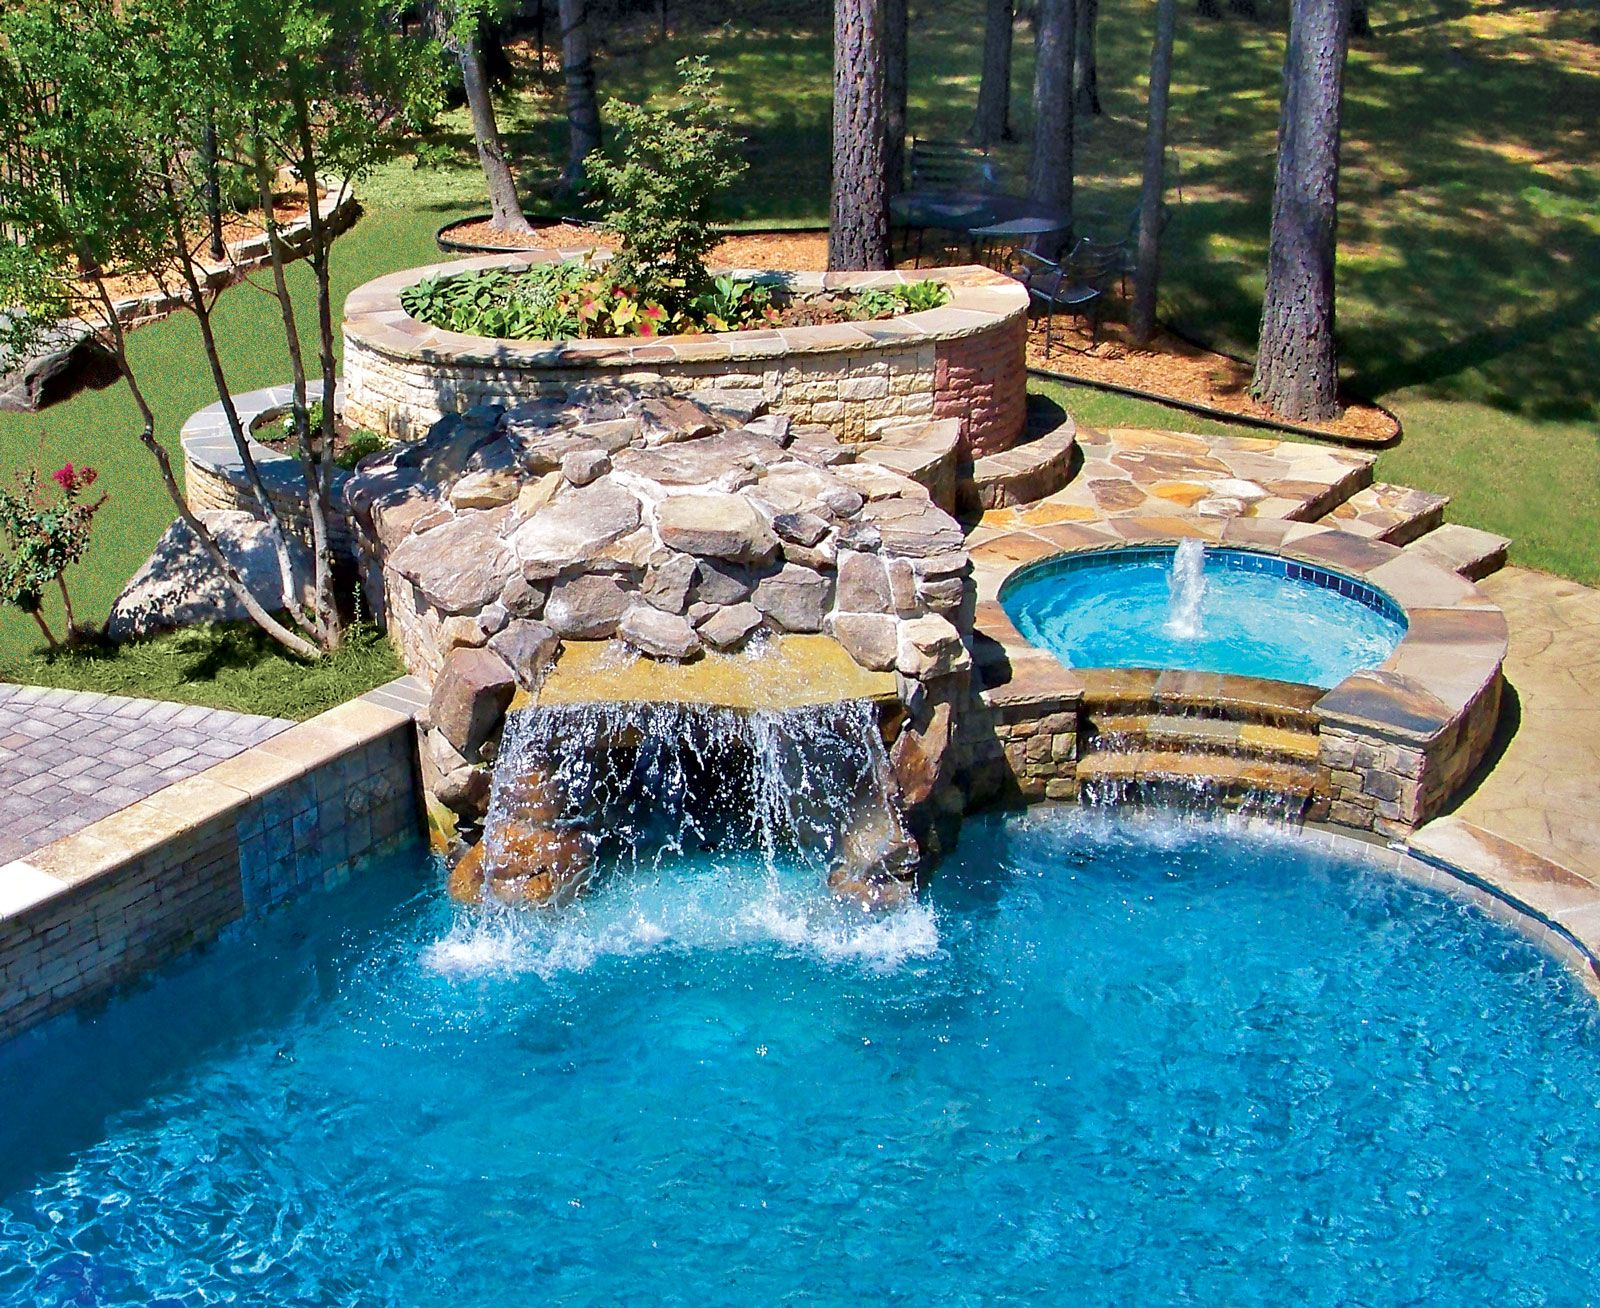 Swimming Pool Rock Waterfall Pictures Blue Haven Rock Waterfall Indoor Waterfall Pools Backyard Inground